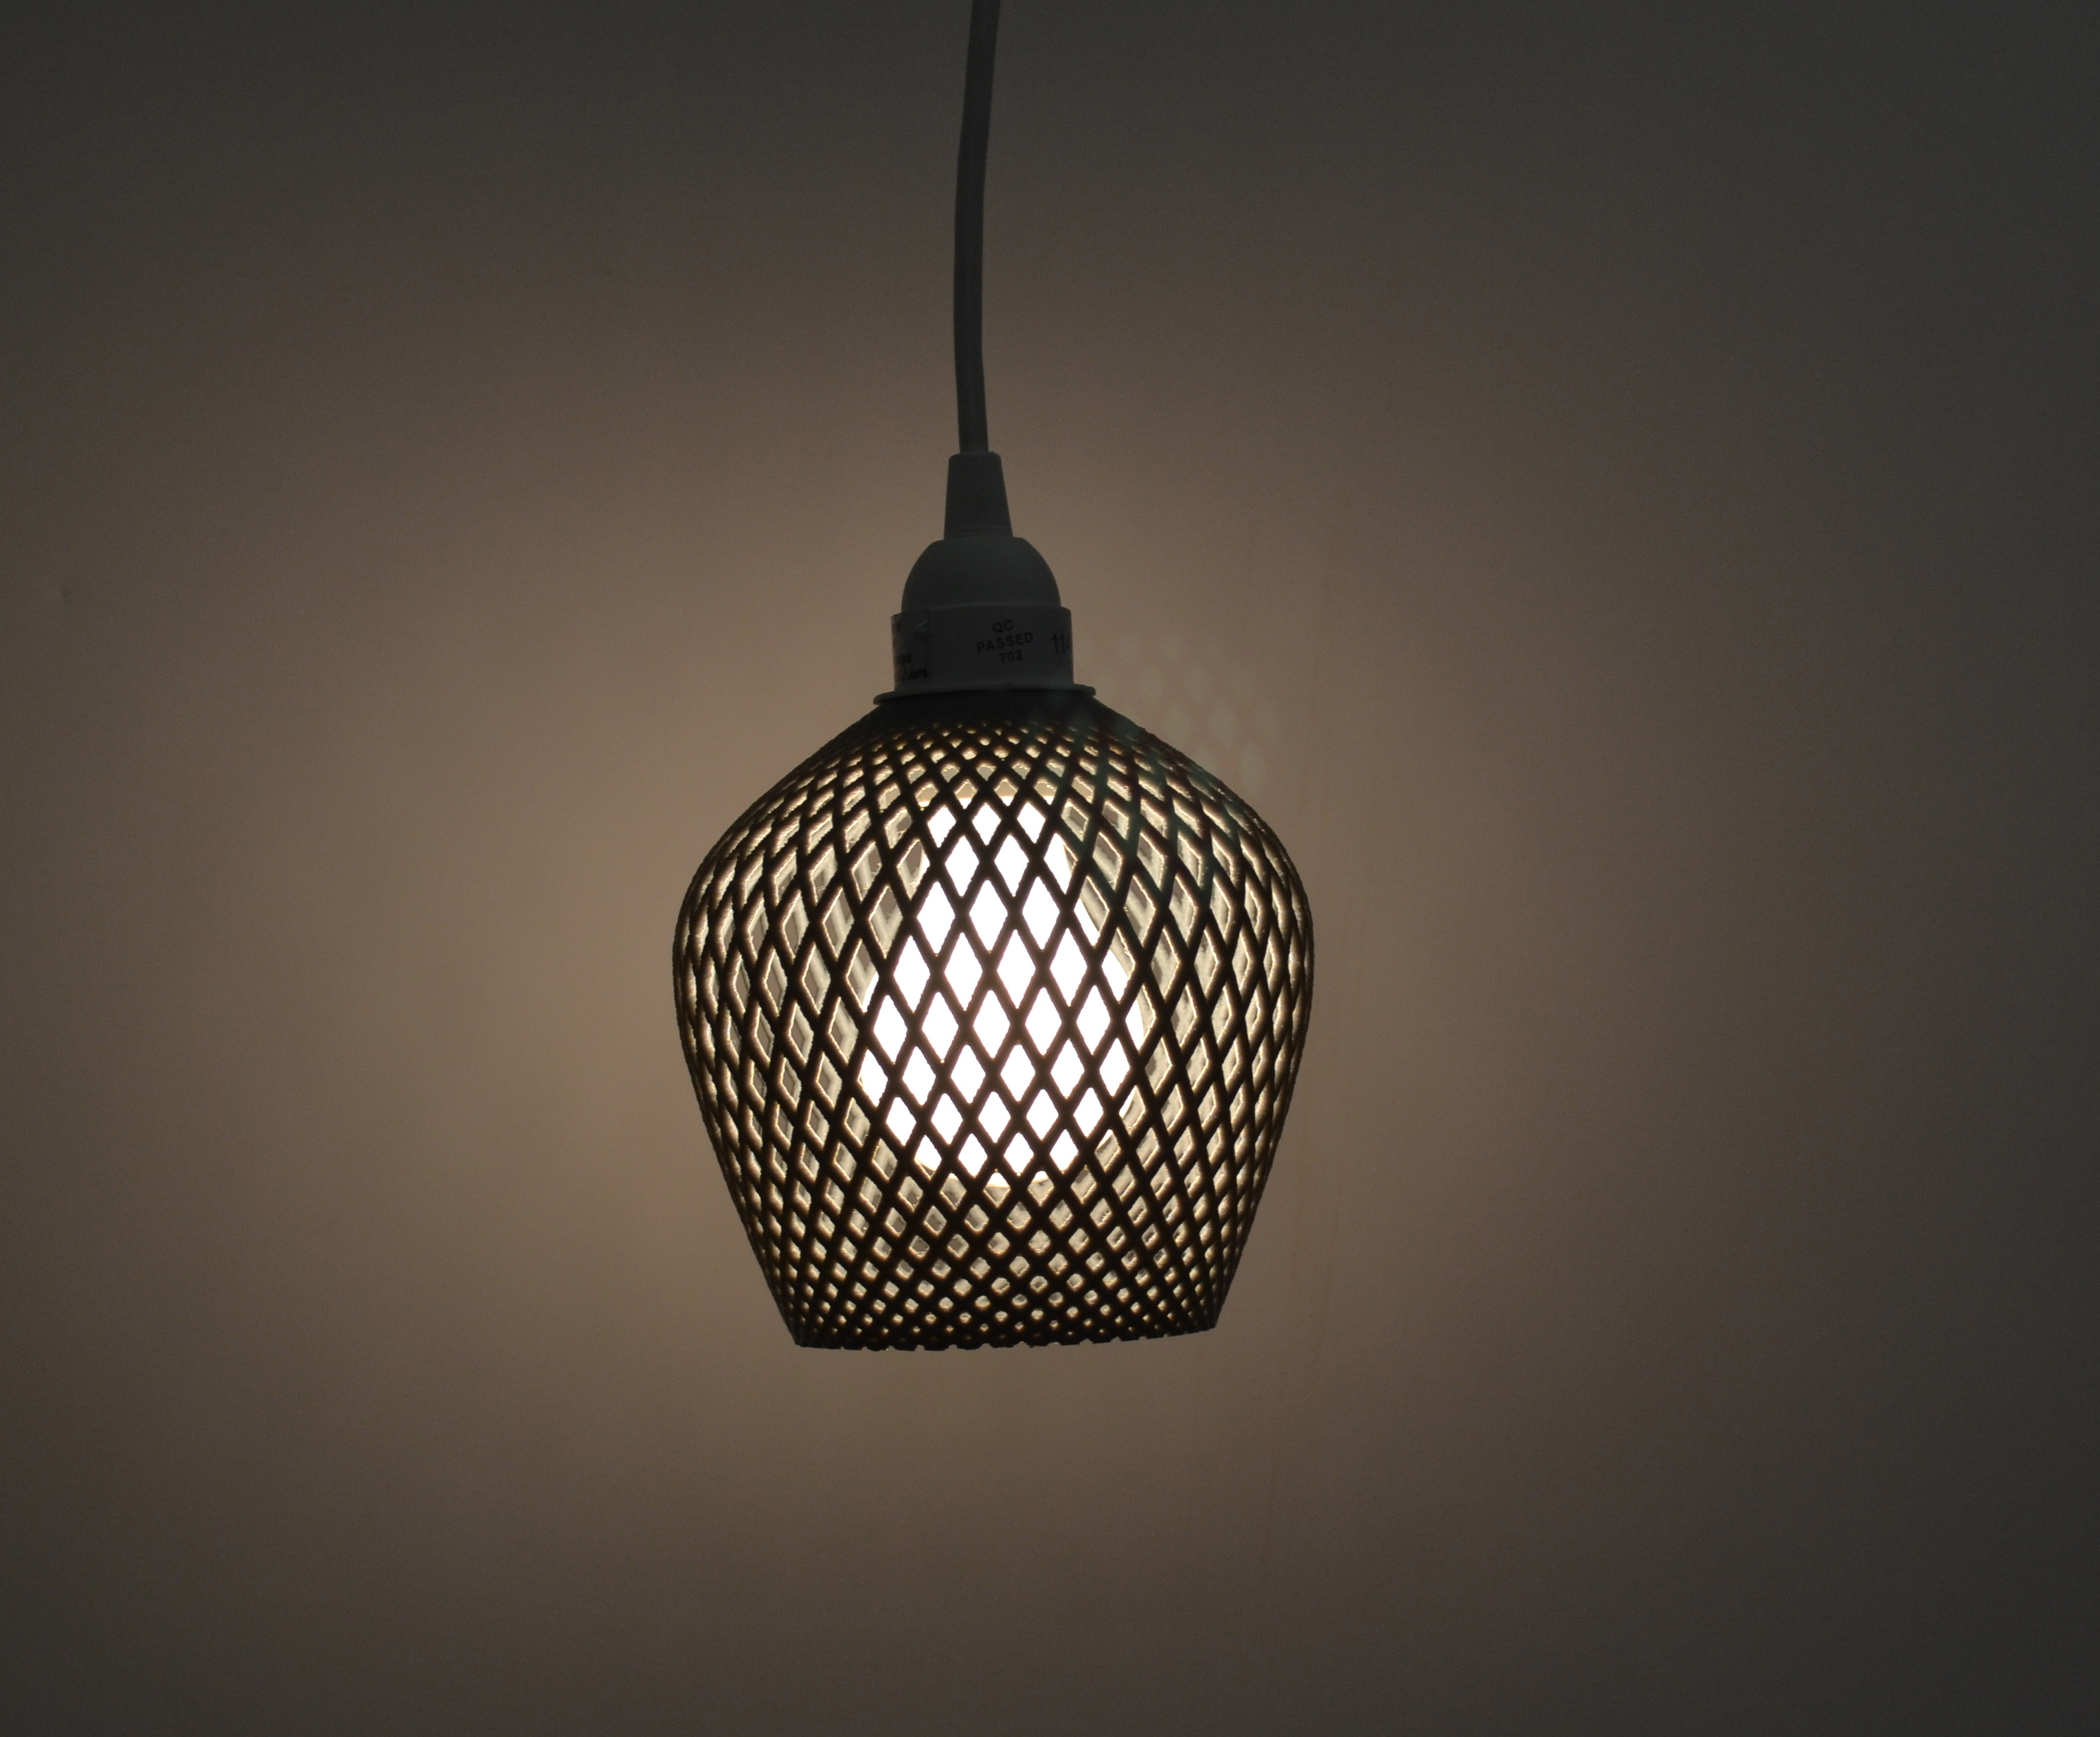 3D printed lamps by Samuel Bernier, Project RE_